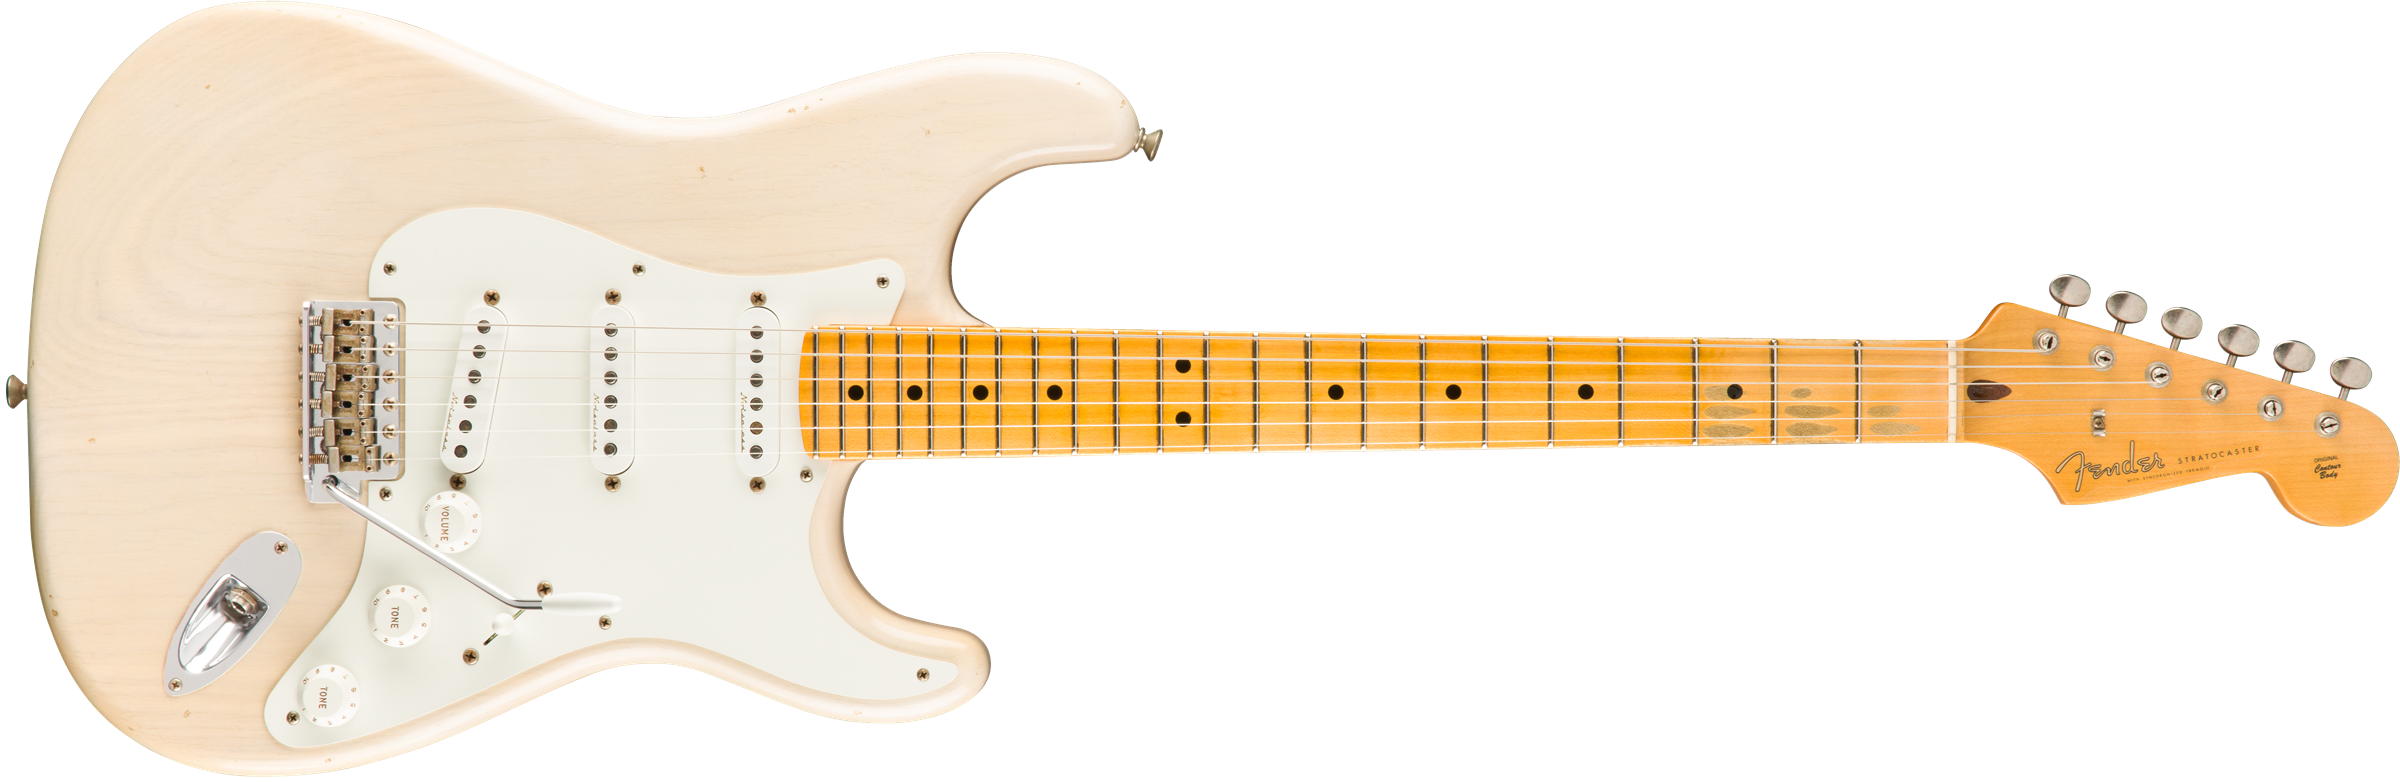 FENDER-Eric-Clapton-Signature-Stratocaster-Journeyman-Relic-Maple-Fingerboard-Aged-White-Blonde-sku-571000983